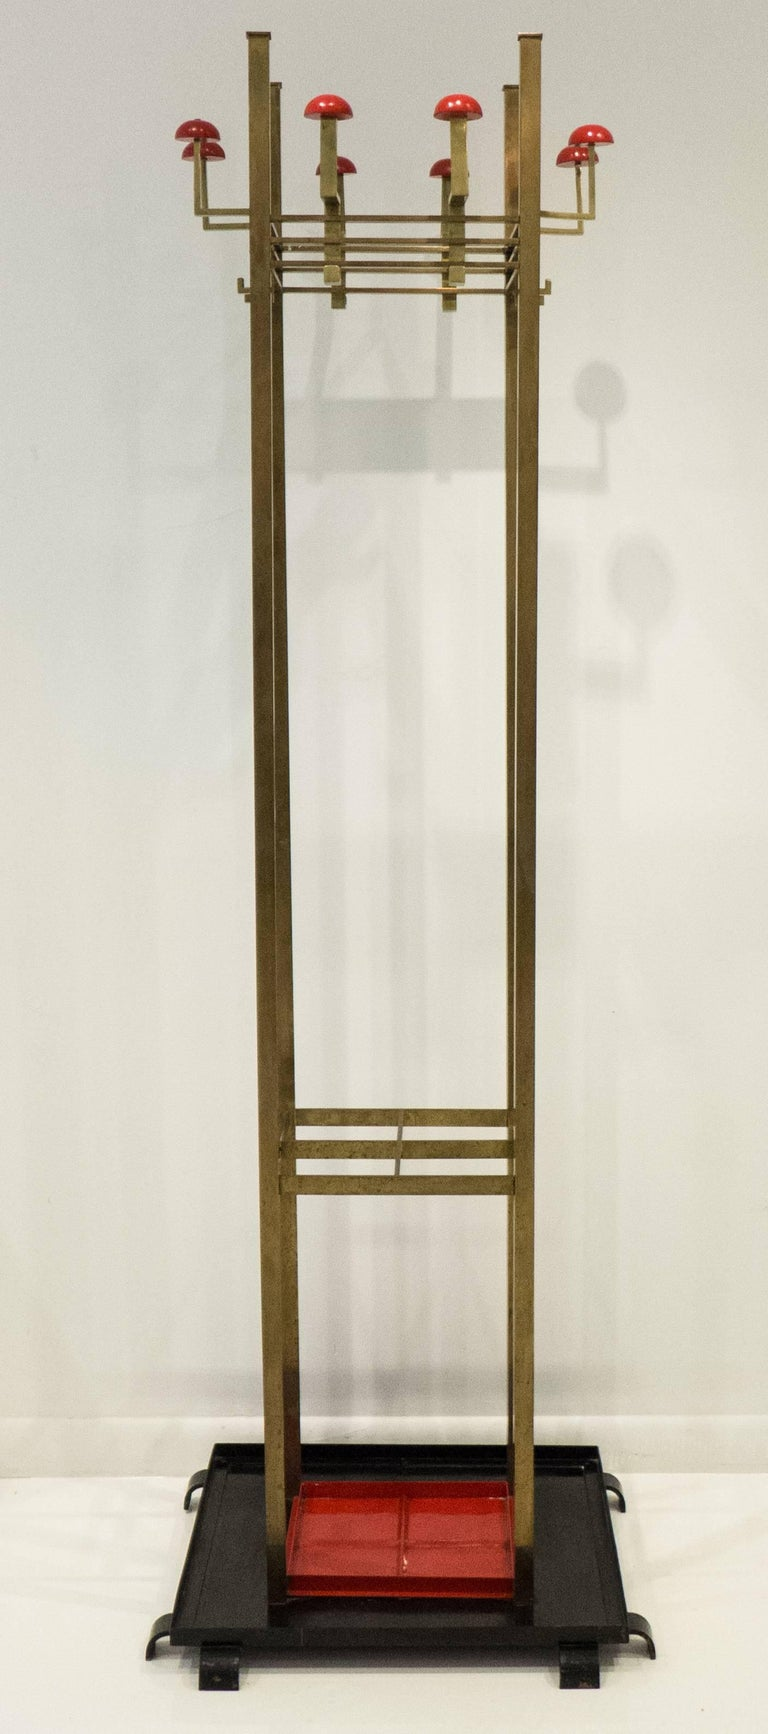 Tall Secessionist coat stand or hall organizer of brass, painted steel, and painted wood. Produced by S.A. Loevy in Berlin, circa 1915. S.A. Loevy was founded in 1885 as a bronze foundry specializing in art casting. The company evolved to produce a